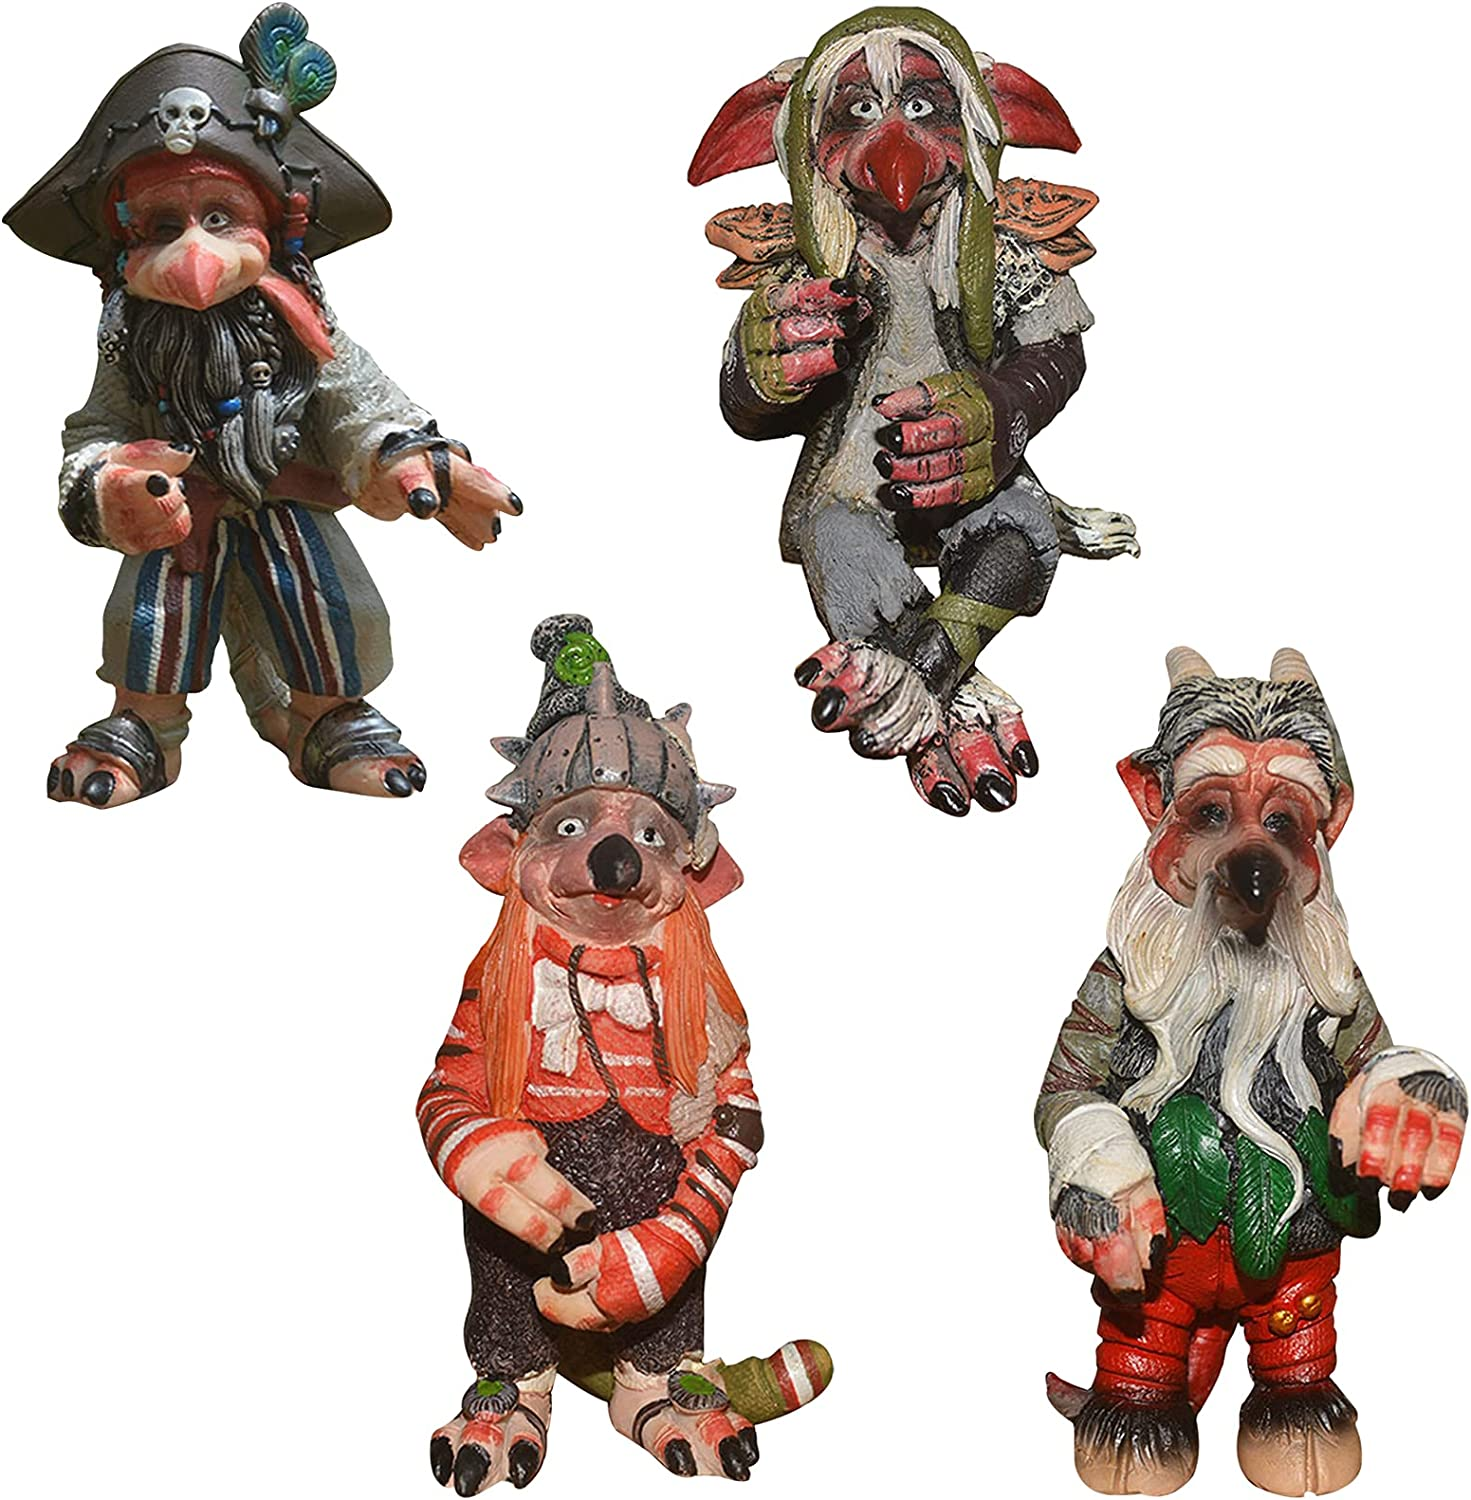 Garden Goblin Statues Outdoor Decoration Scu Special price for a limited time Alien Gothic Atlanta Mall Savage